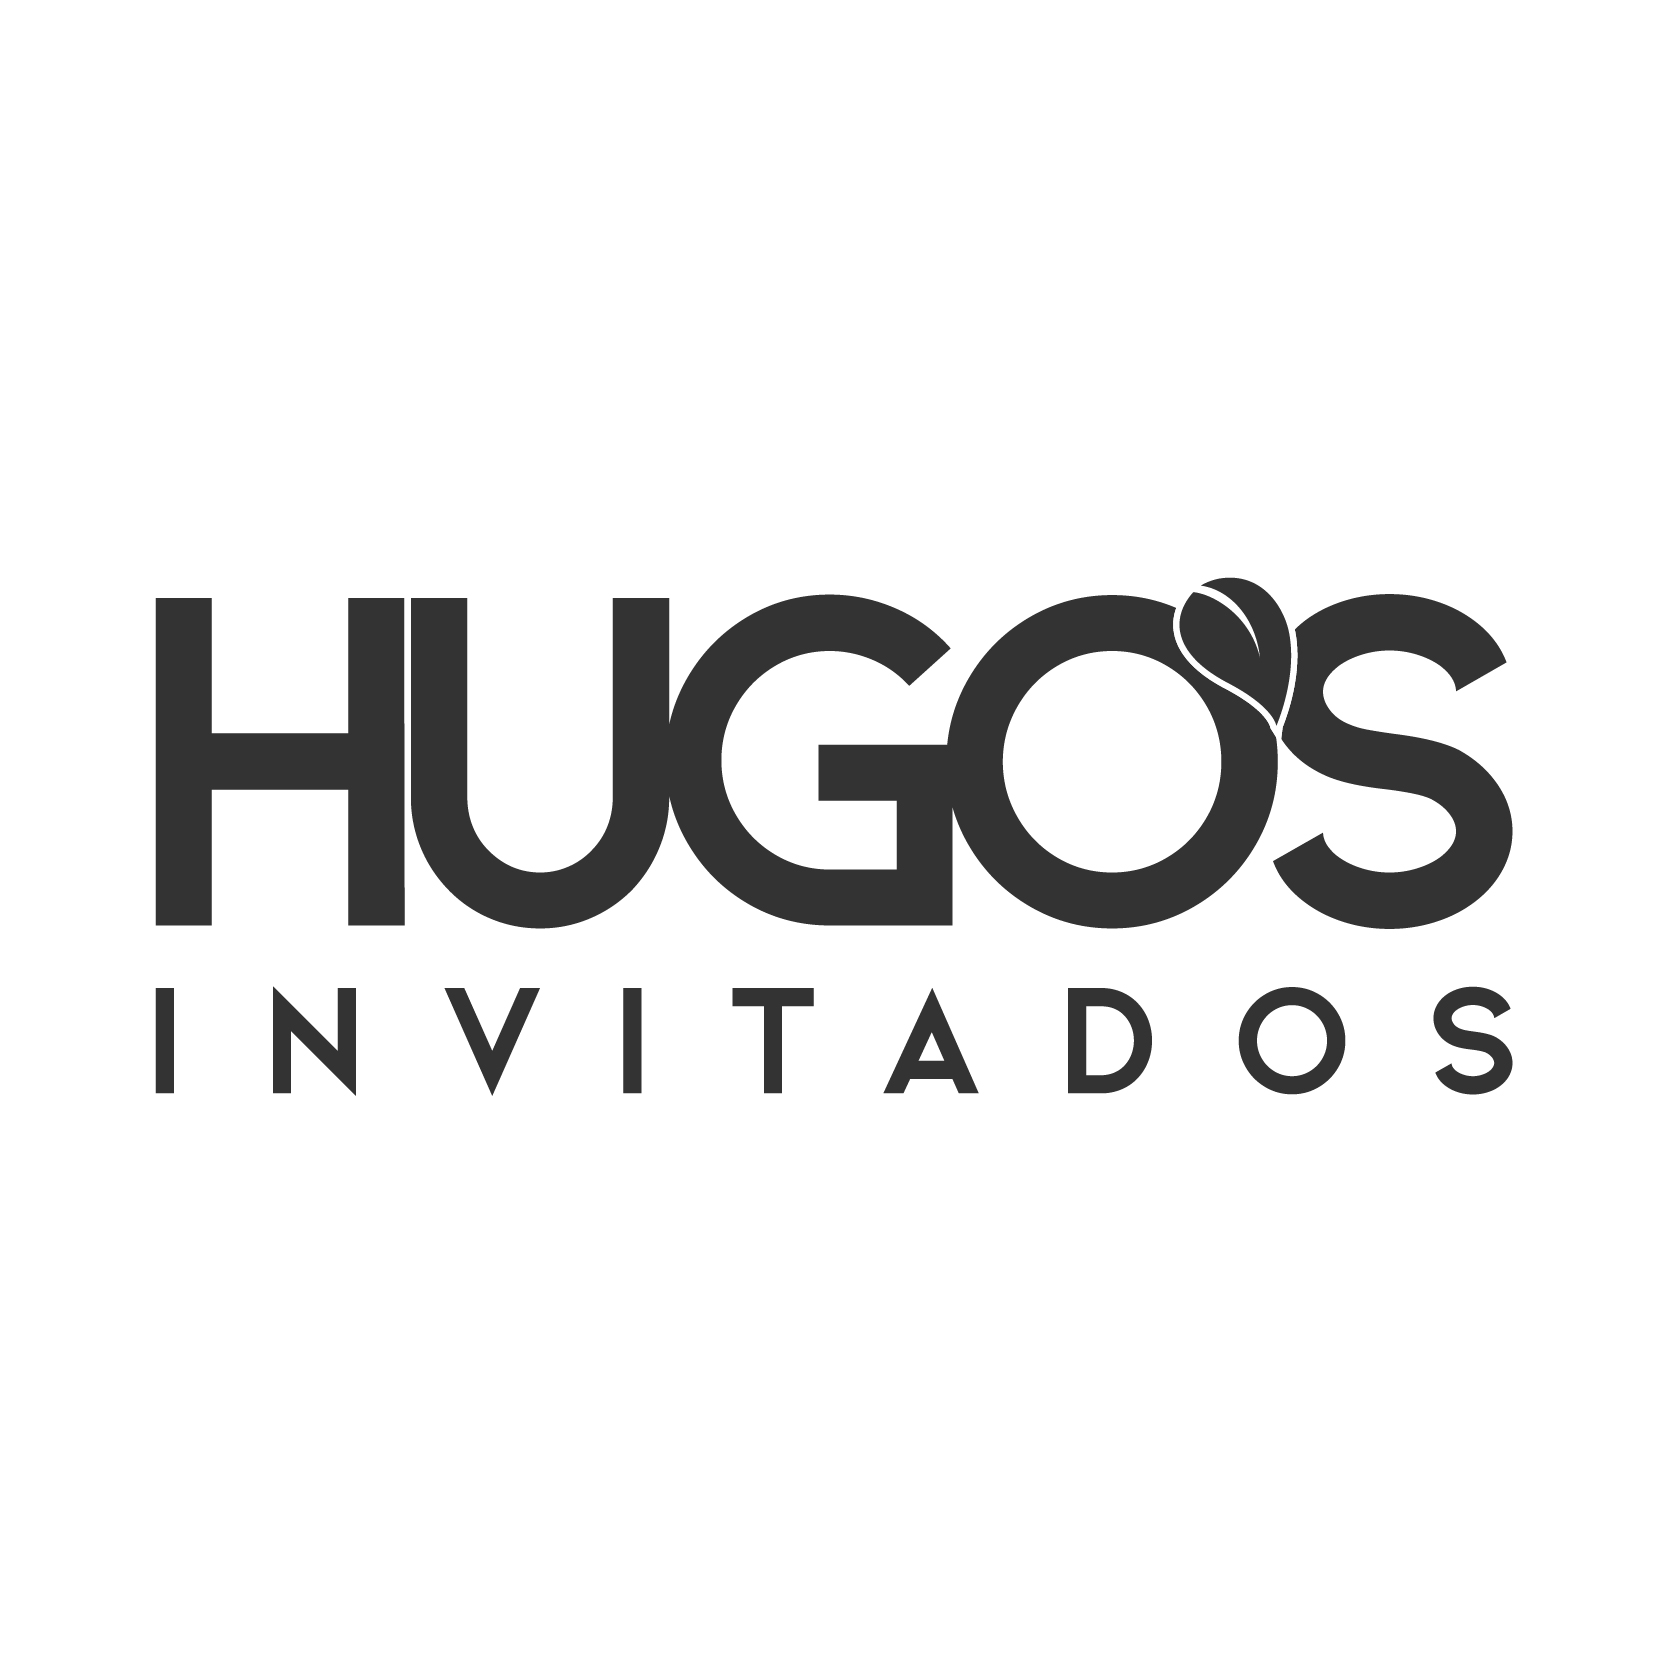 9th Logos_Hugo's Invitados.jpg